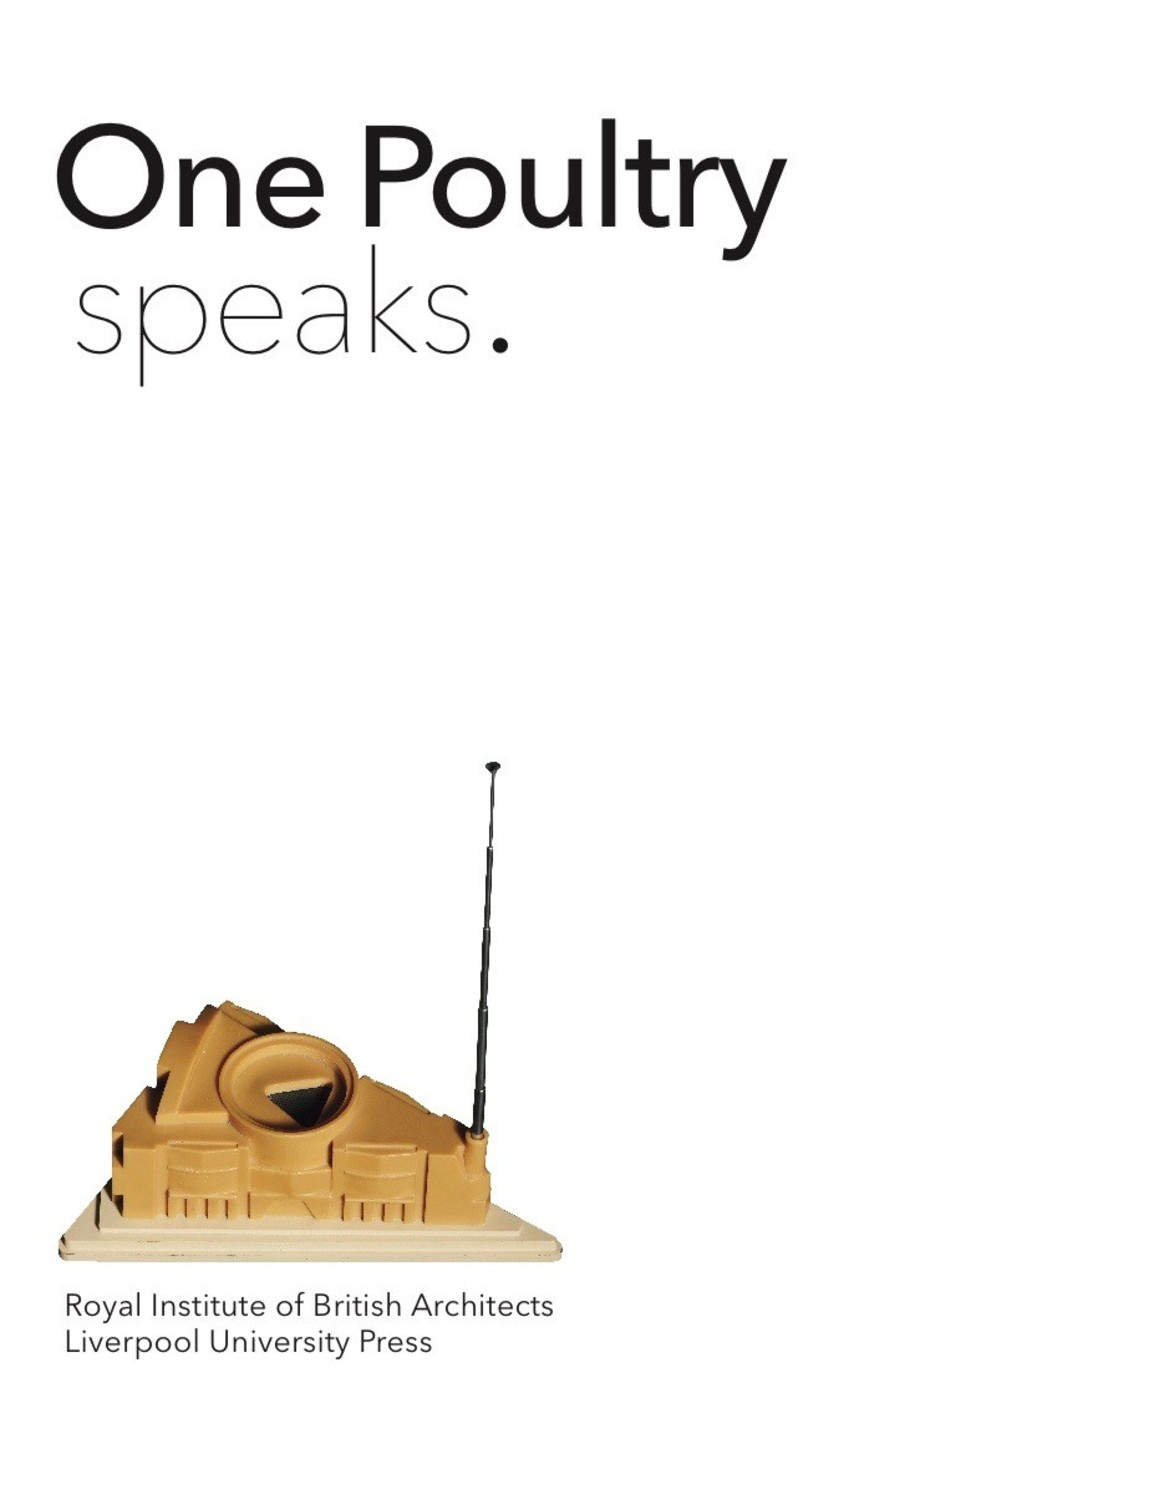 One Poultry Speaks